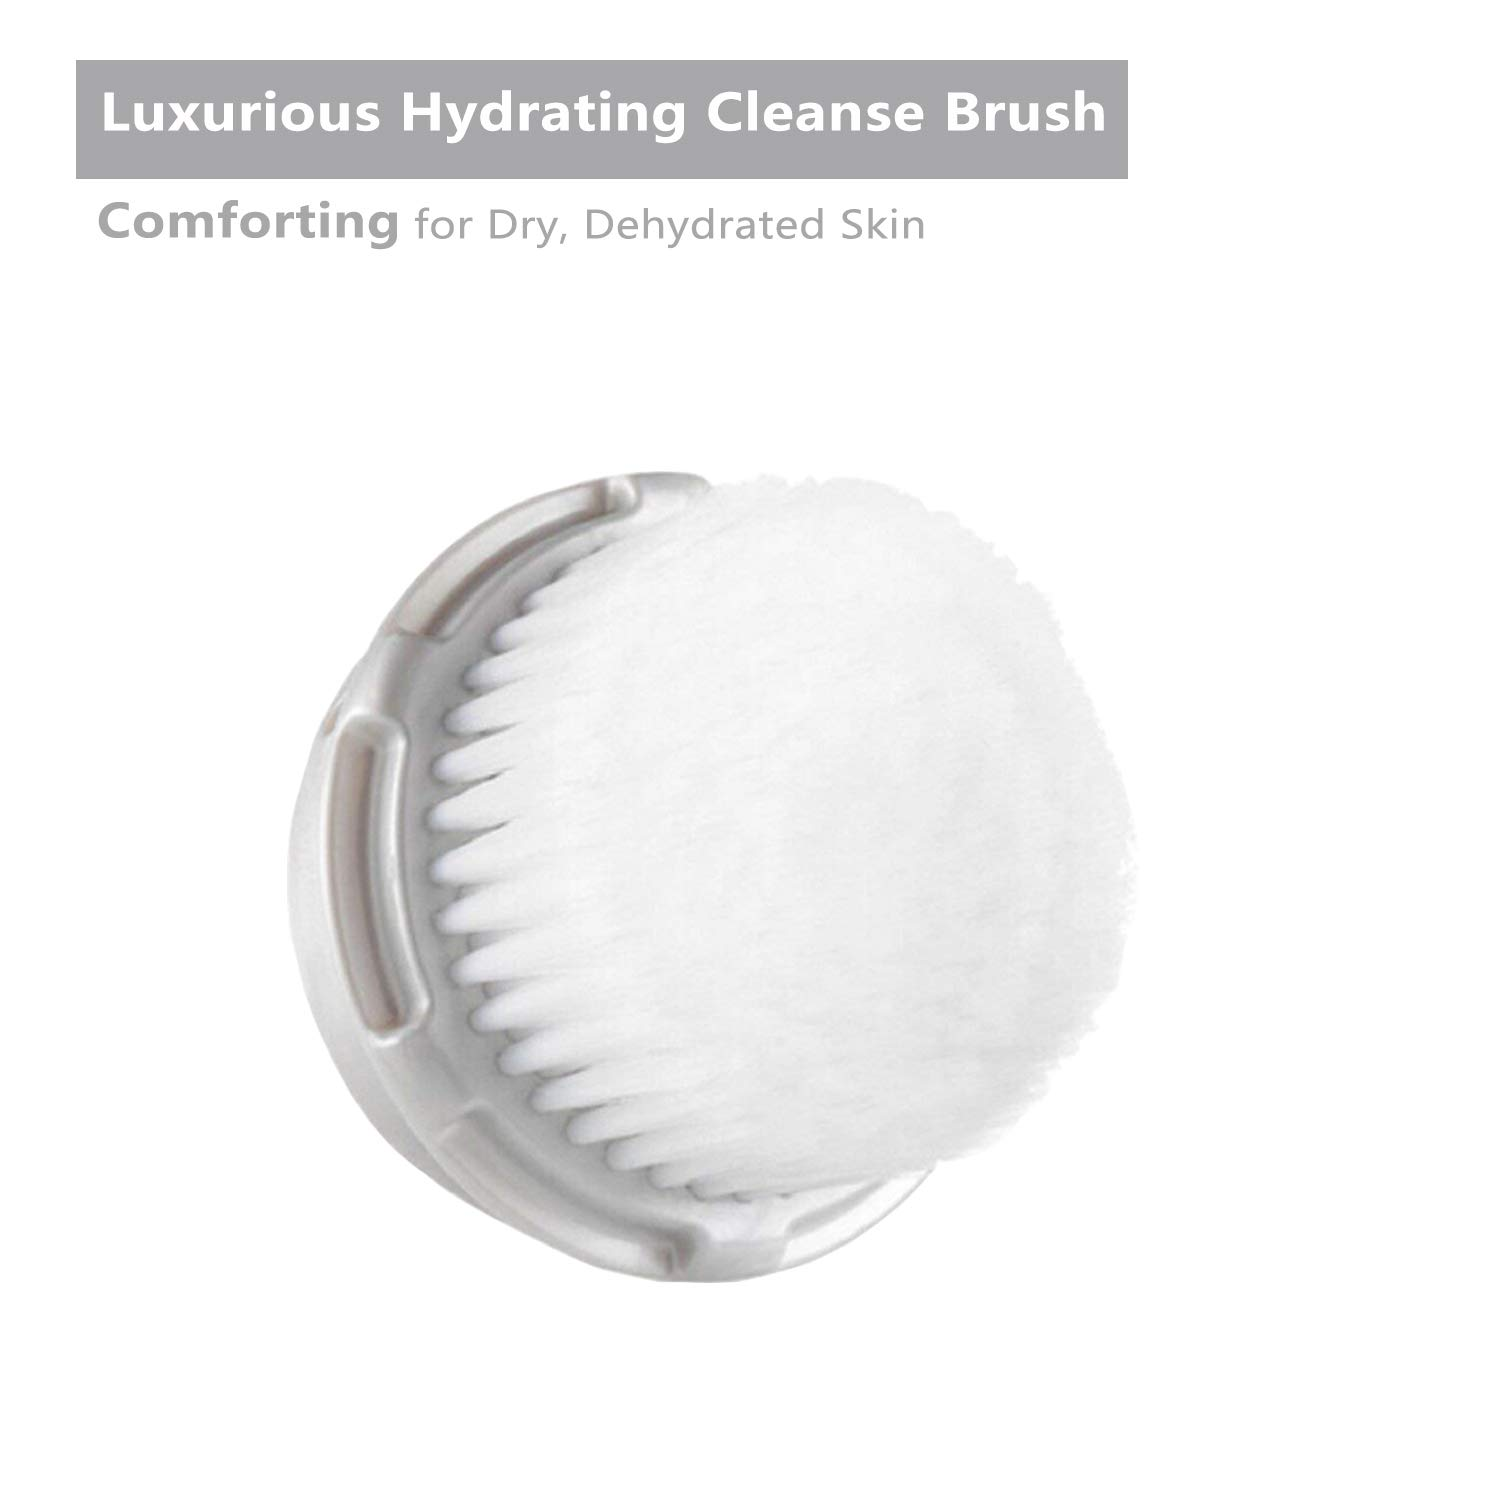 Lemleo Replacement High Performance Luxe Facial Cleansing Brush Head, Compatible with Mia Mia2 Mia3 Aria Mia Fit Smart Profile and Alpha Fit Facial Cleansing System